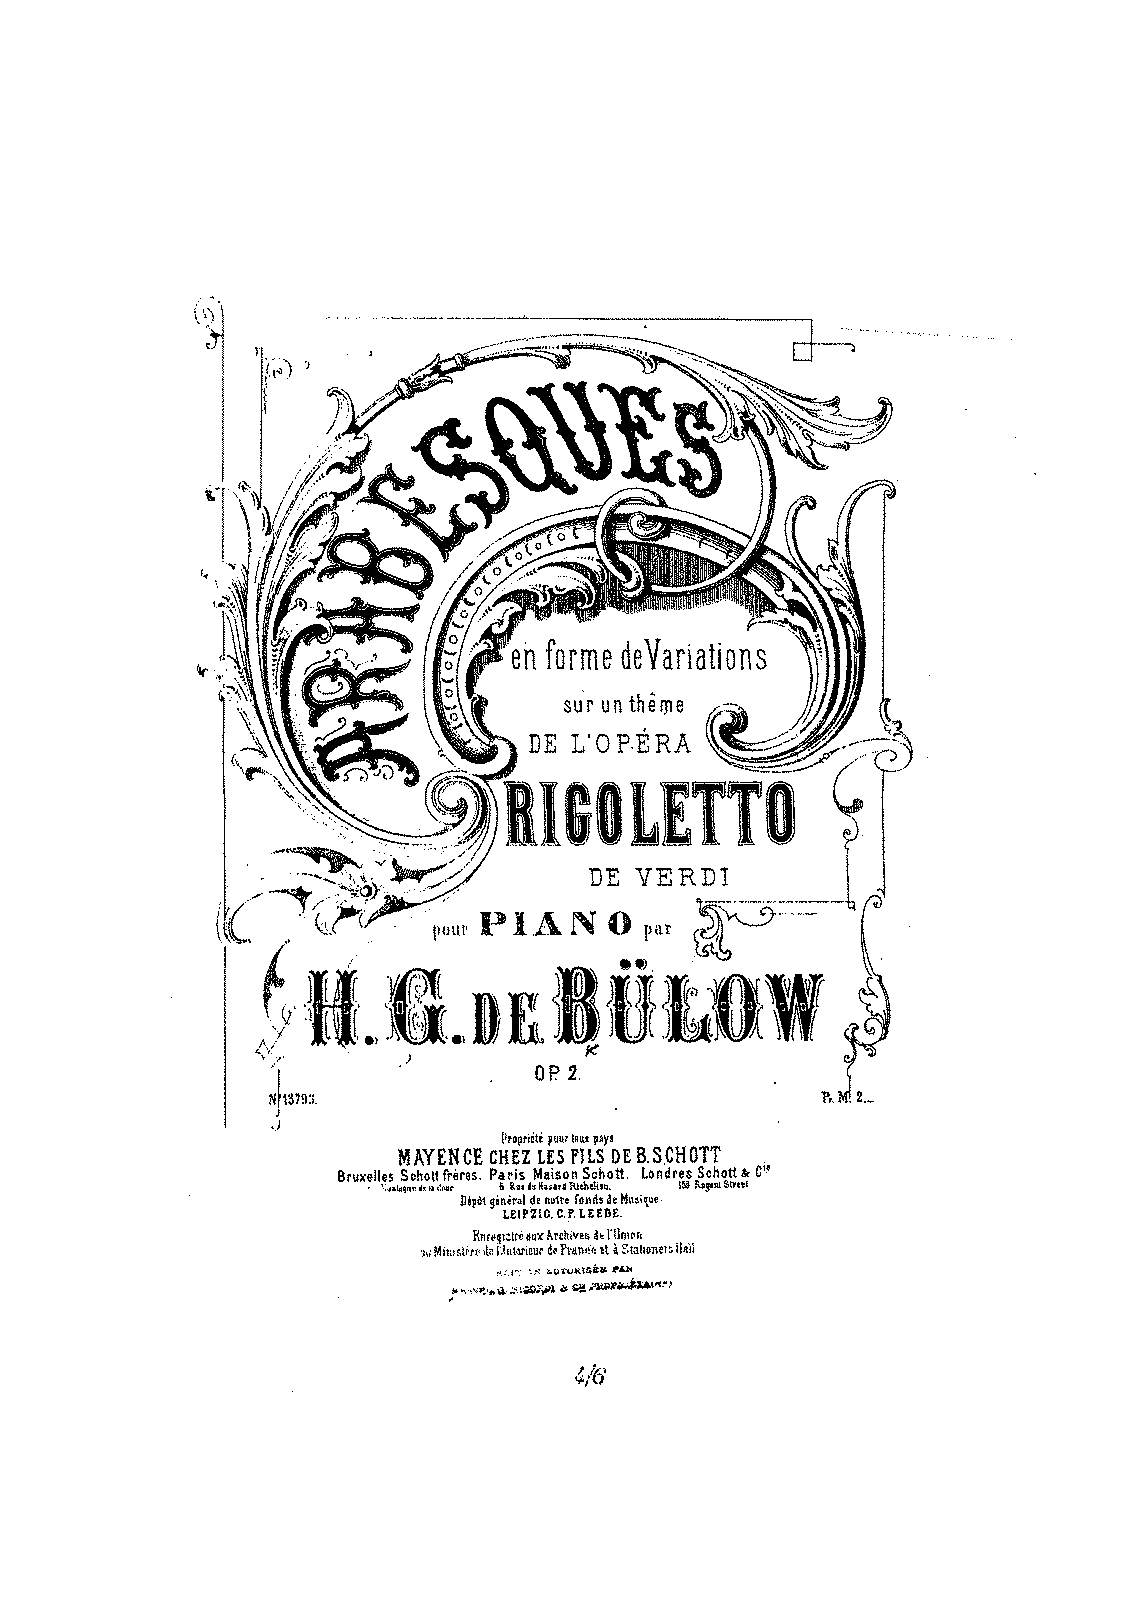 PMLP112740-bulow arabesques on verdi rigoletto.pdf